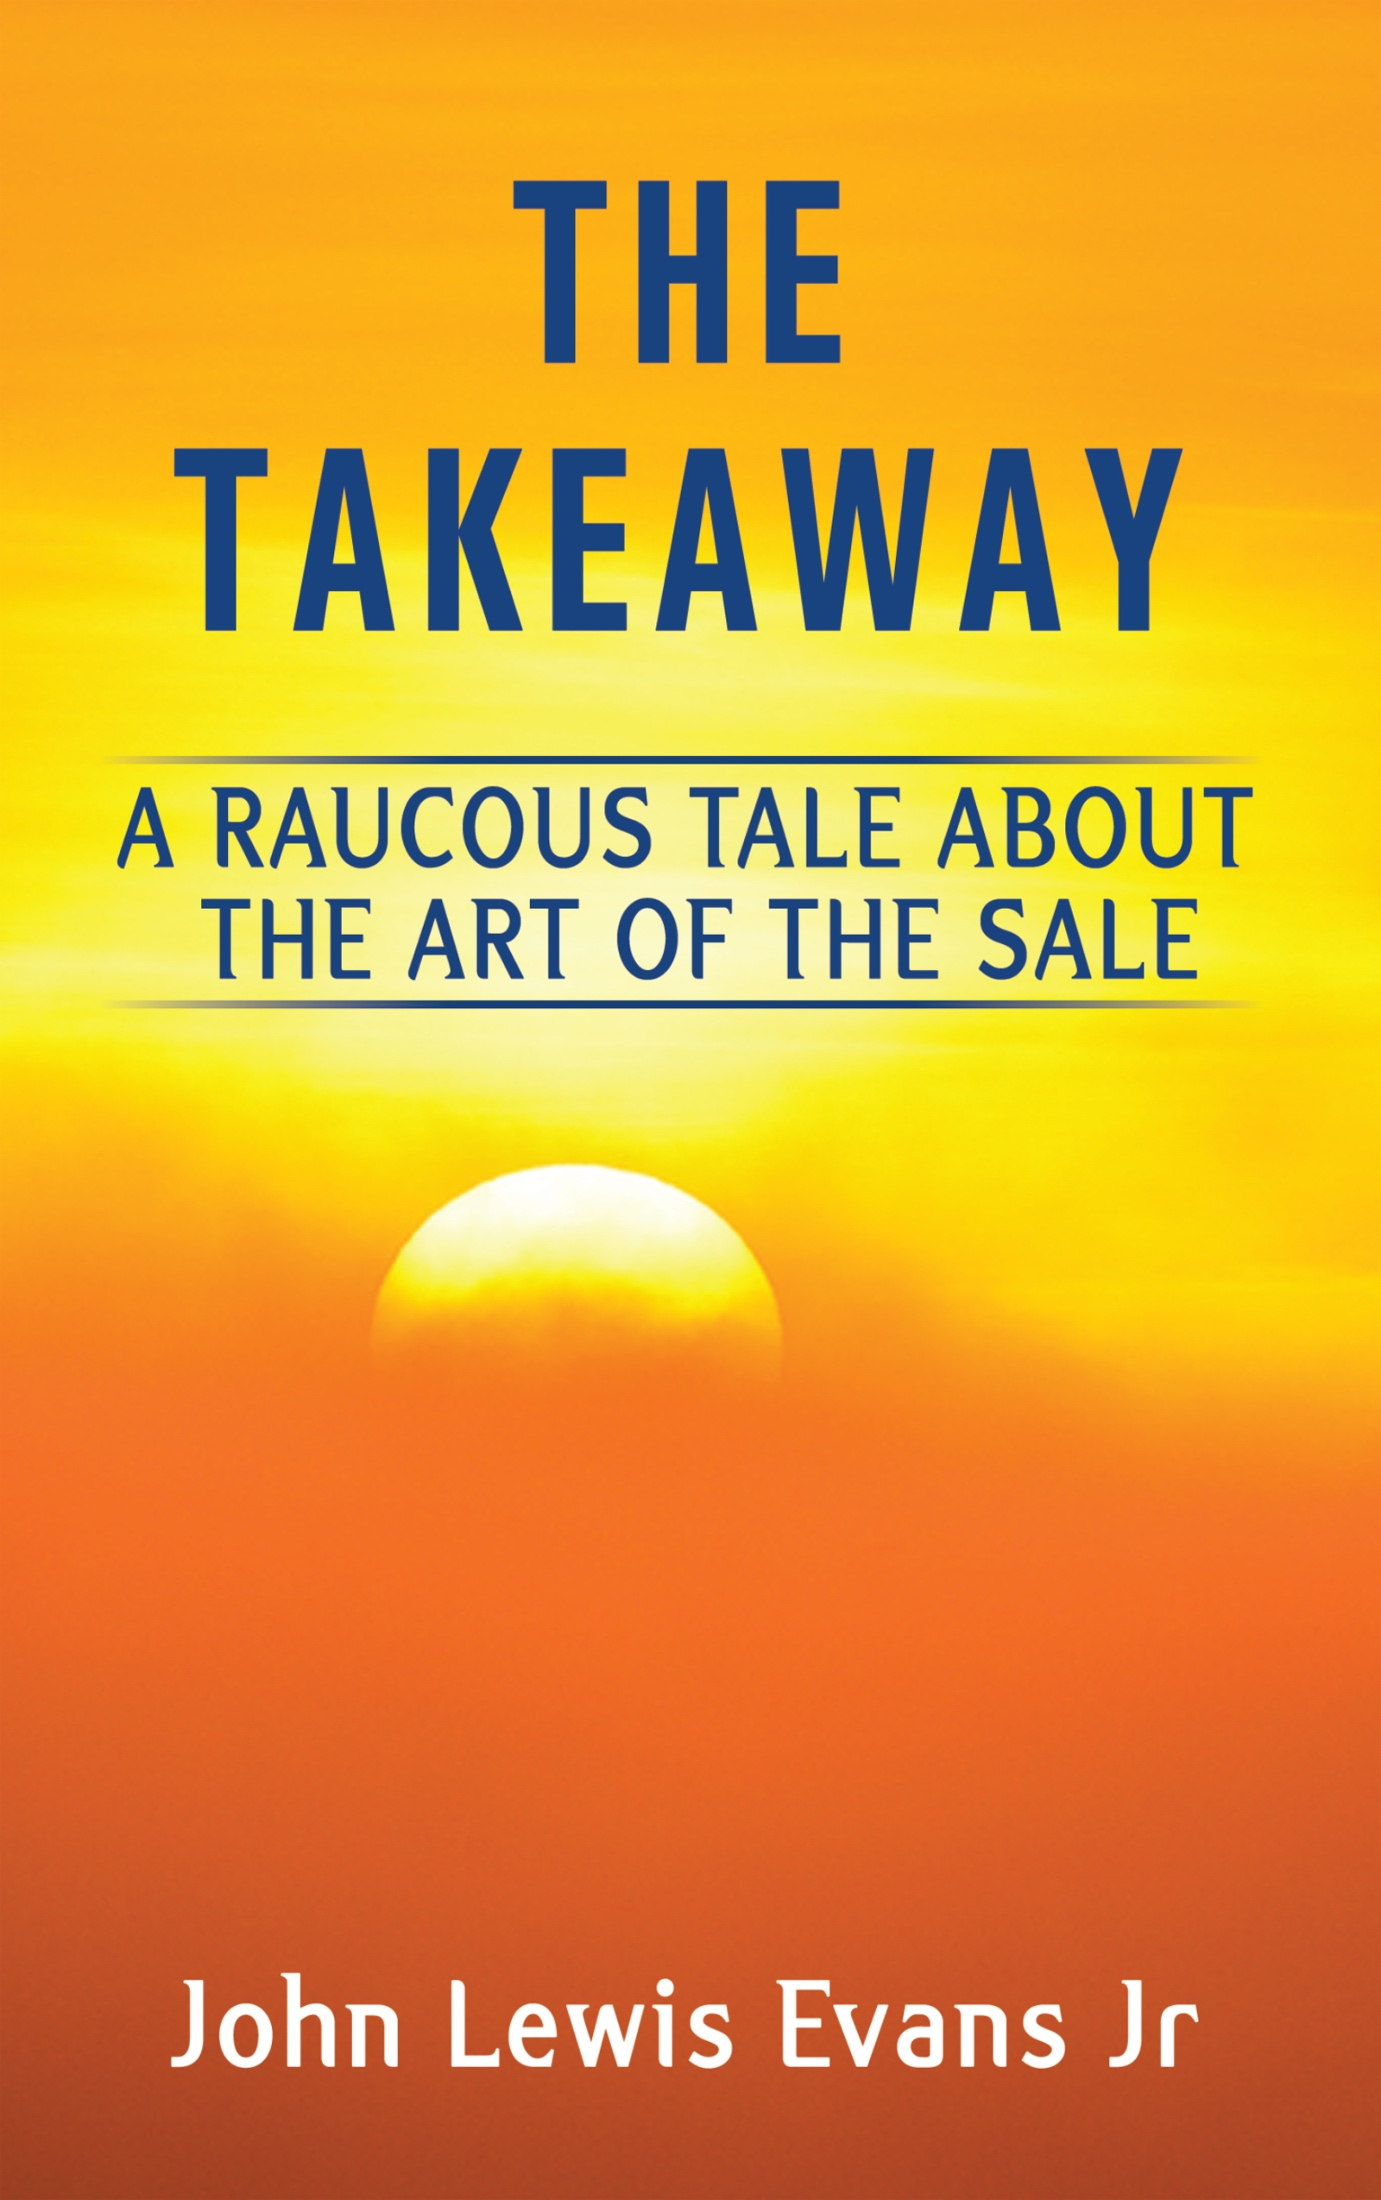 The Takeaway - Available on Amazon.com